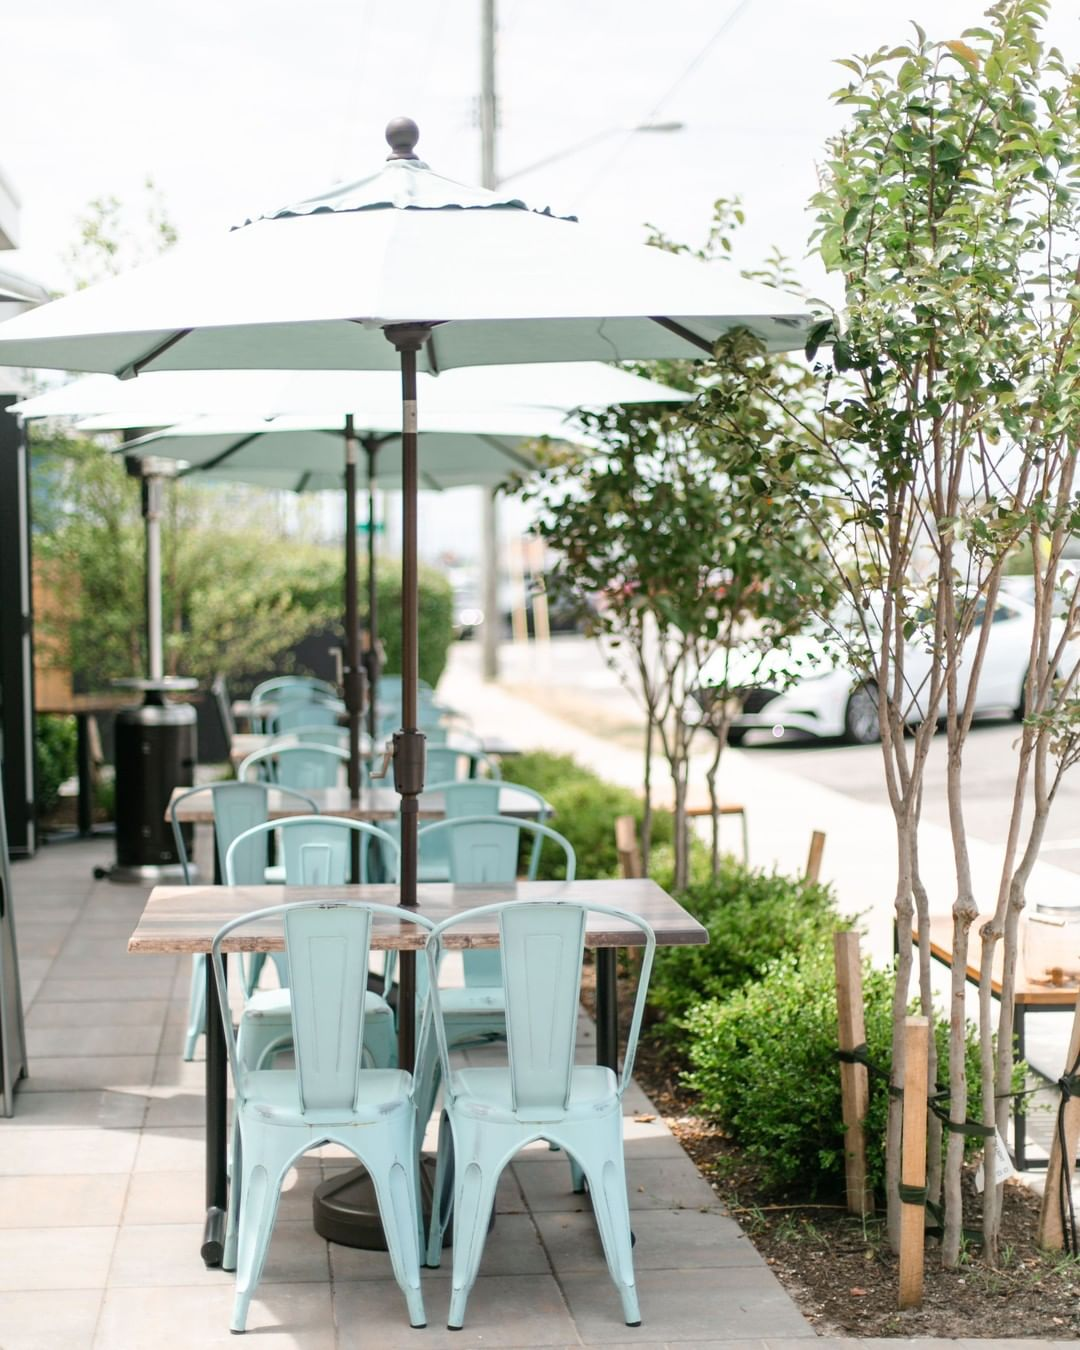 We are really loving our new patio and backyard as relaxing dining spaces for ou…